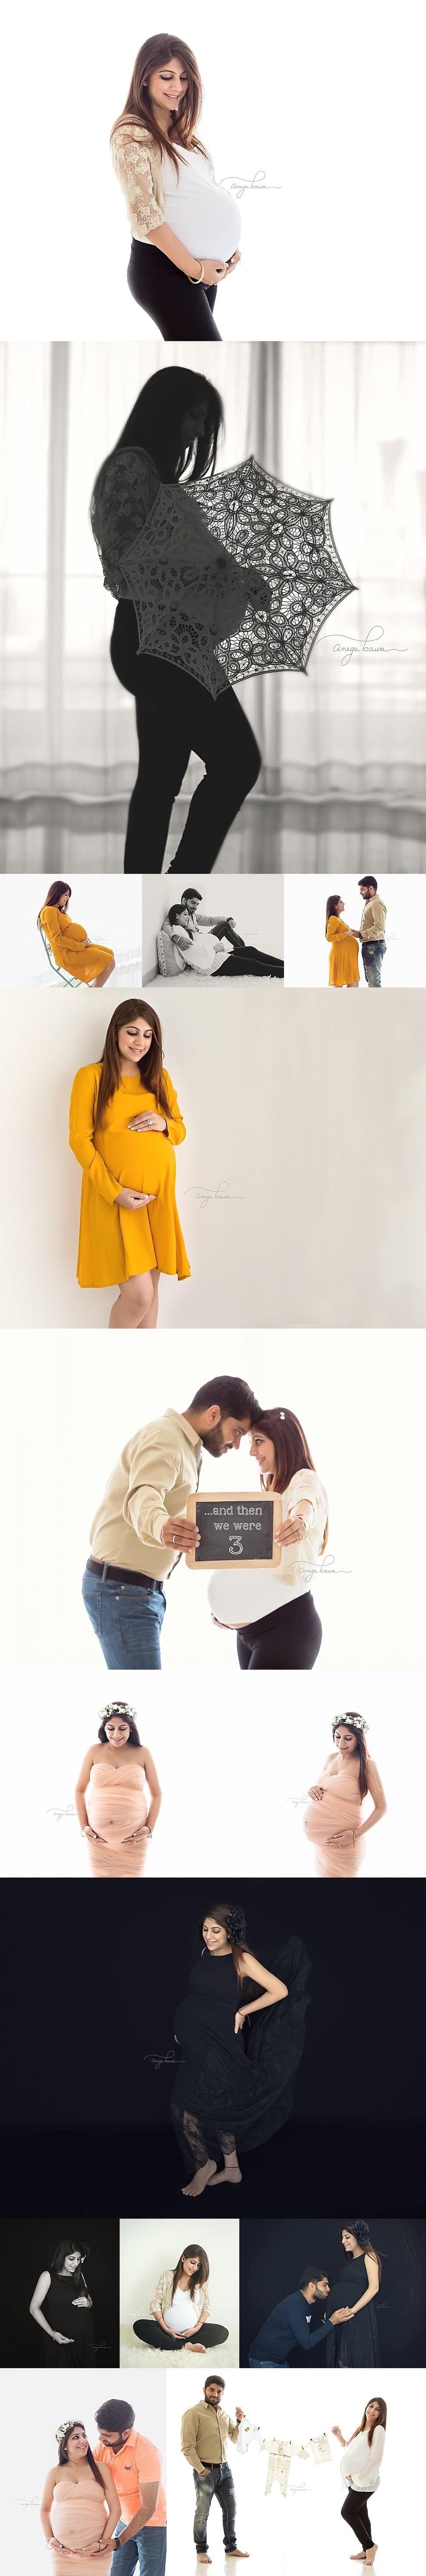 maternity_session_047_noida_pregnancy_photography_gurgaon